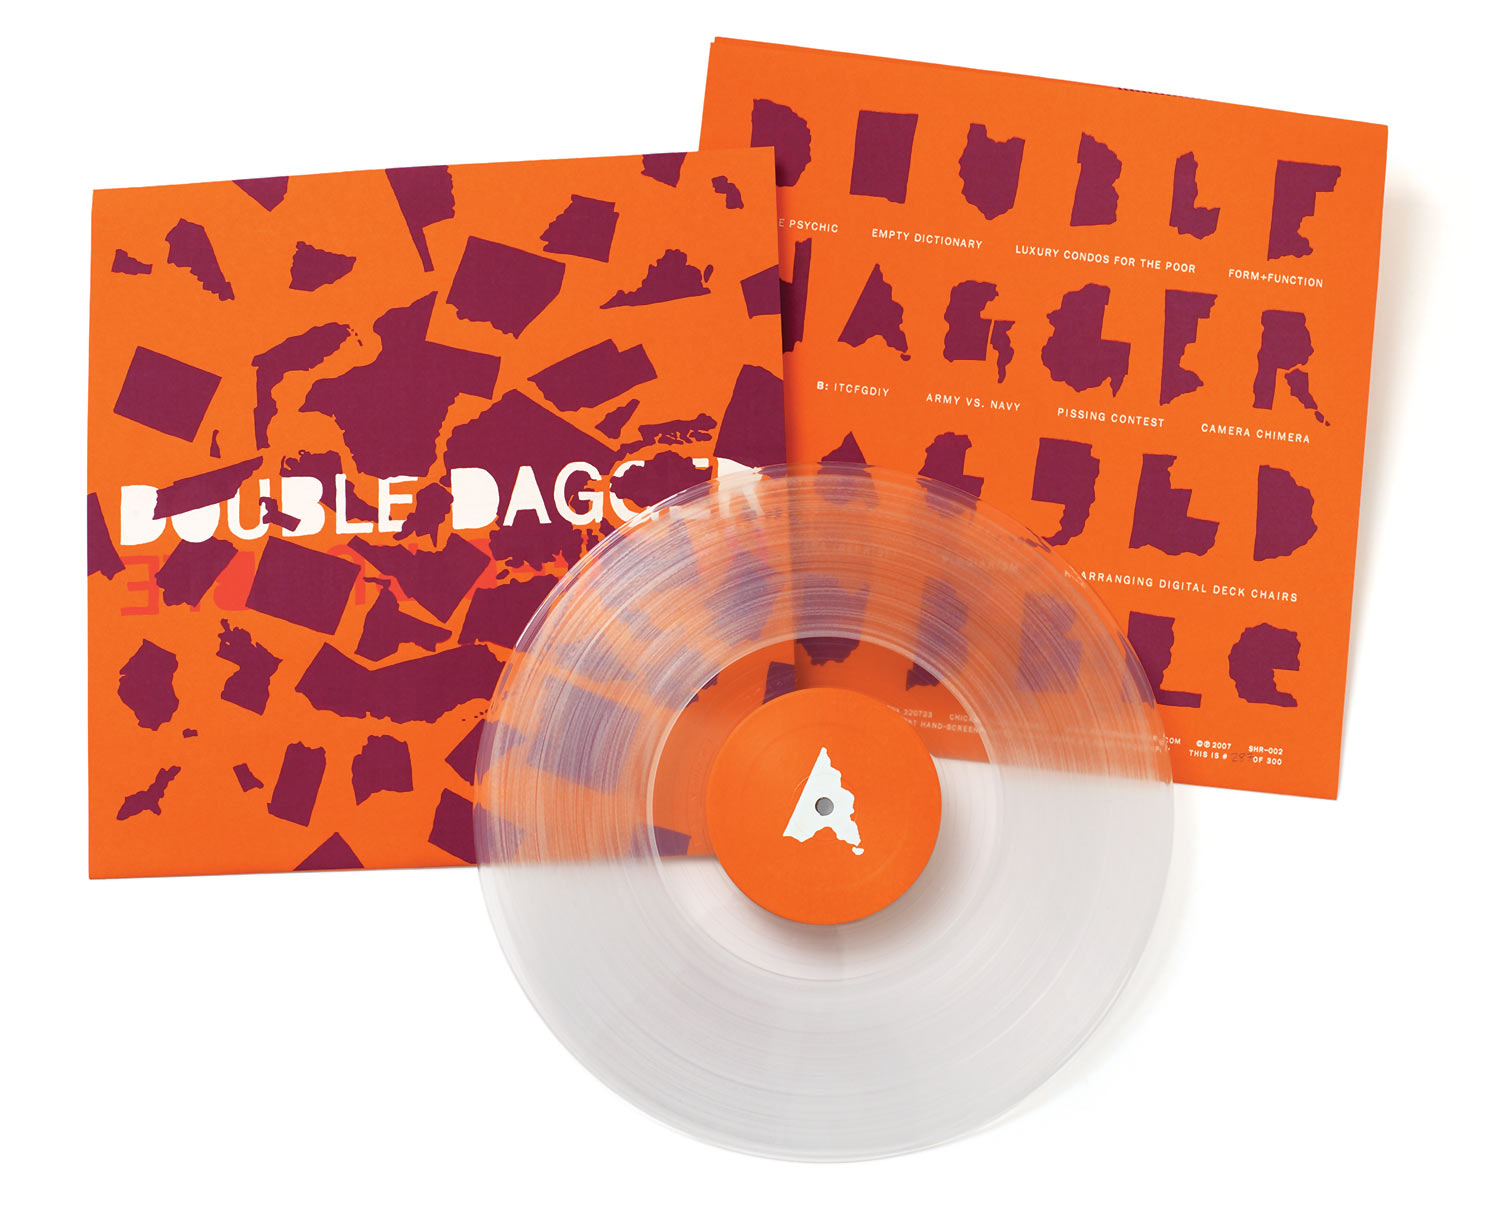 The LP is out of print, but doesn't it look cool?